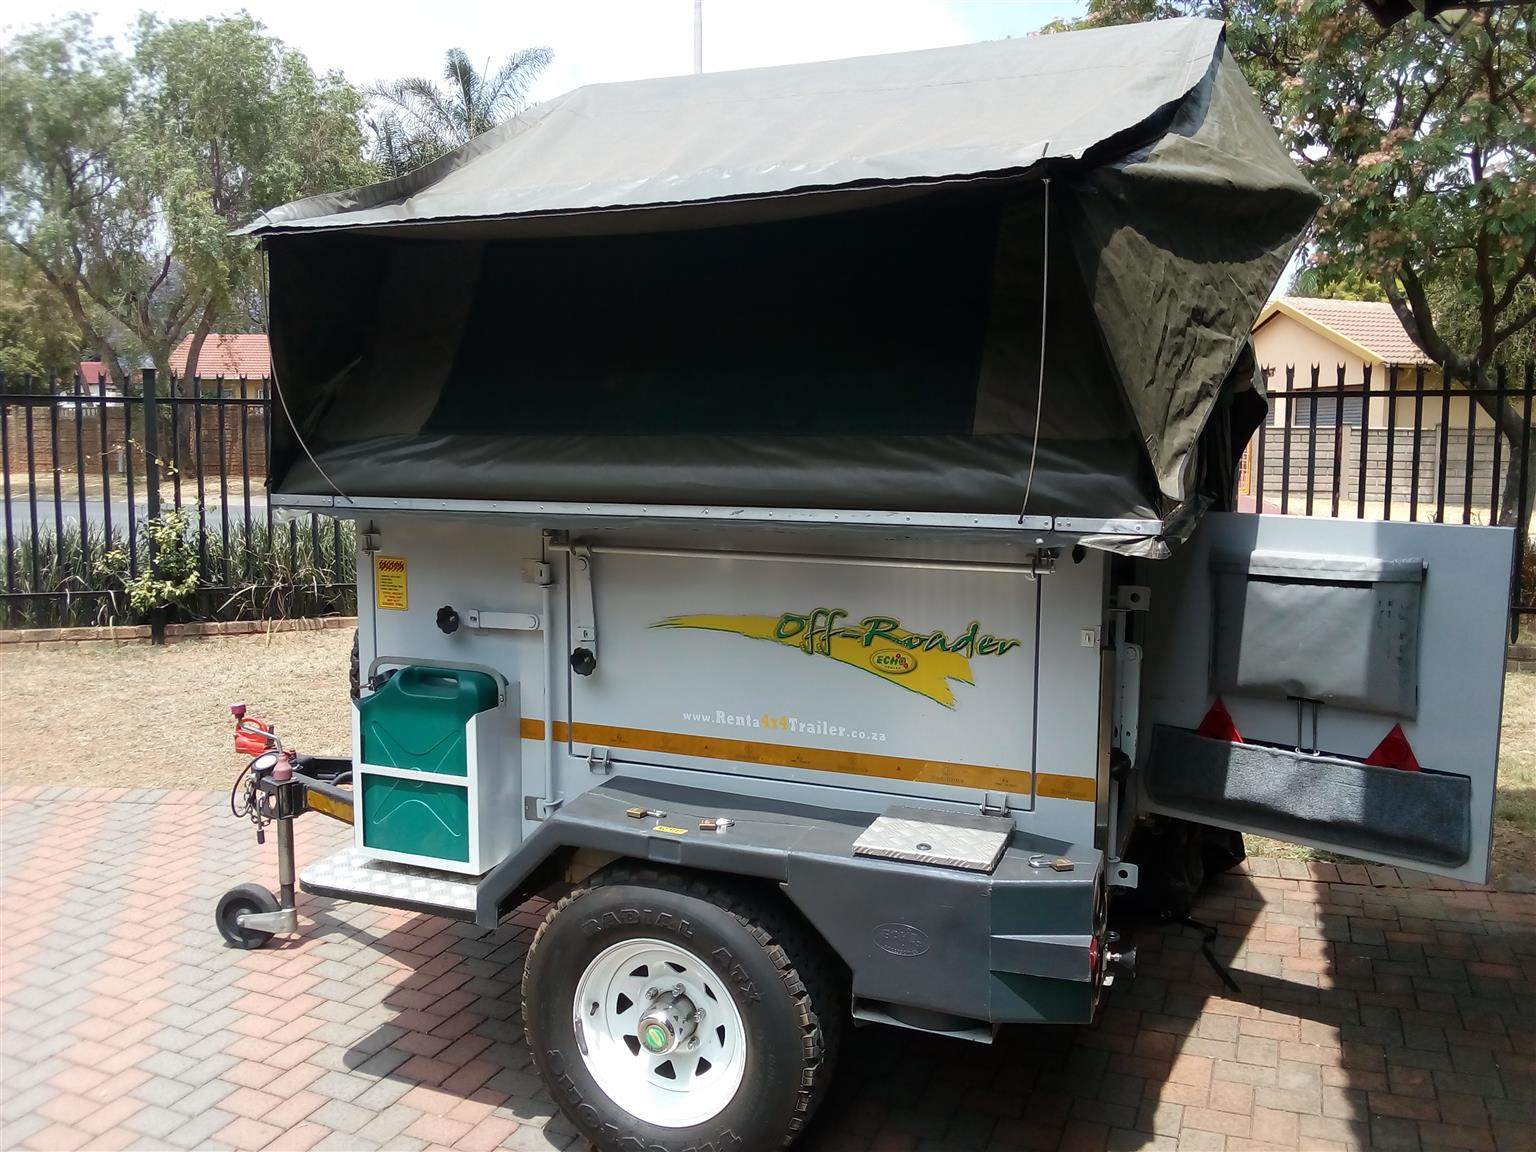 *** Profitable 4x4 Camping trailer rental business for sale ***